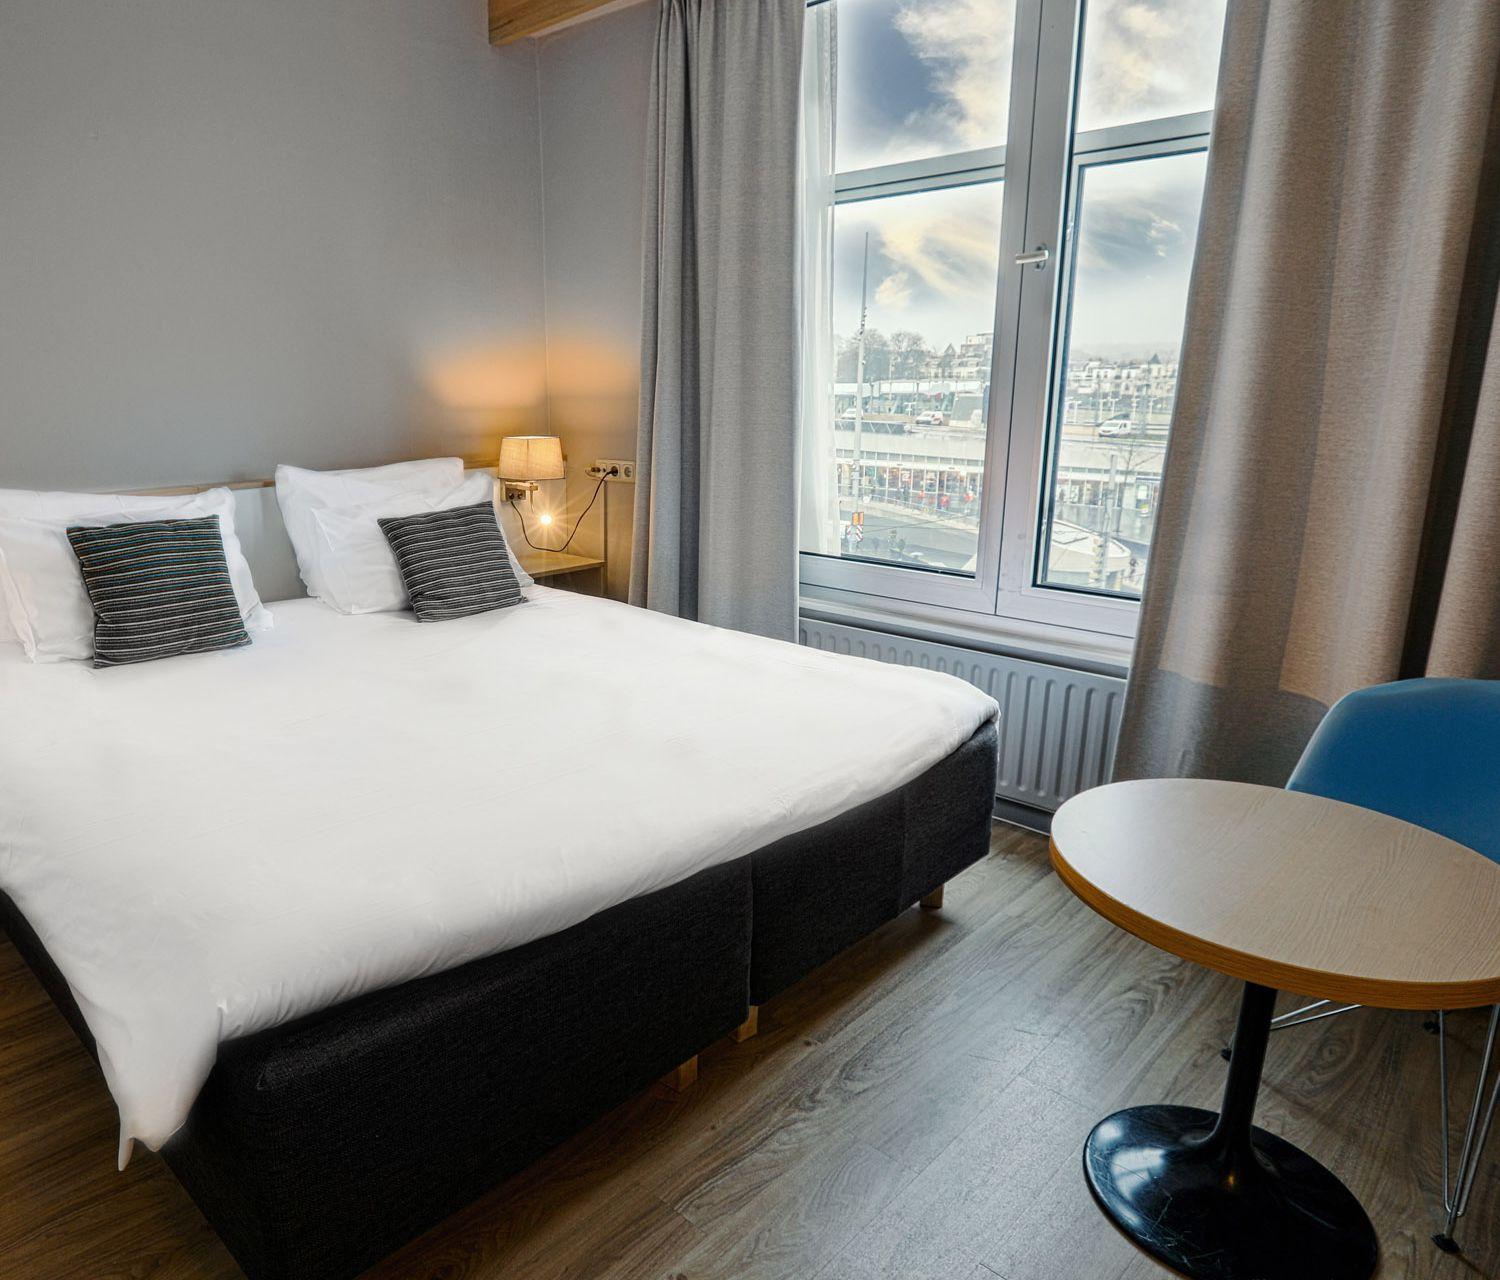 Arnhem lowest prices for your stay